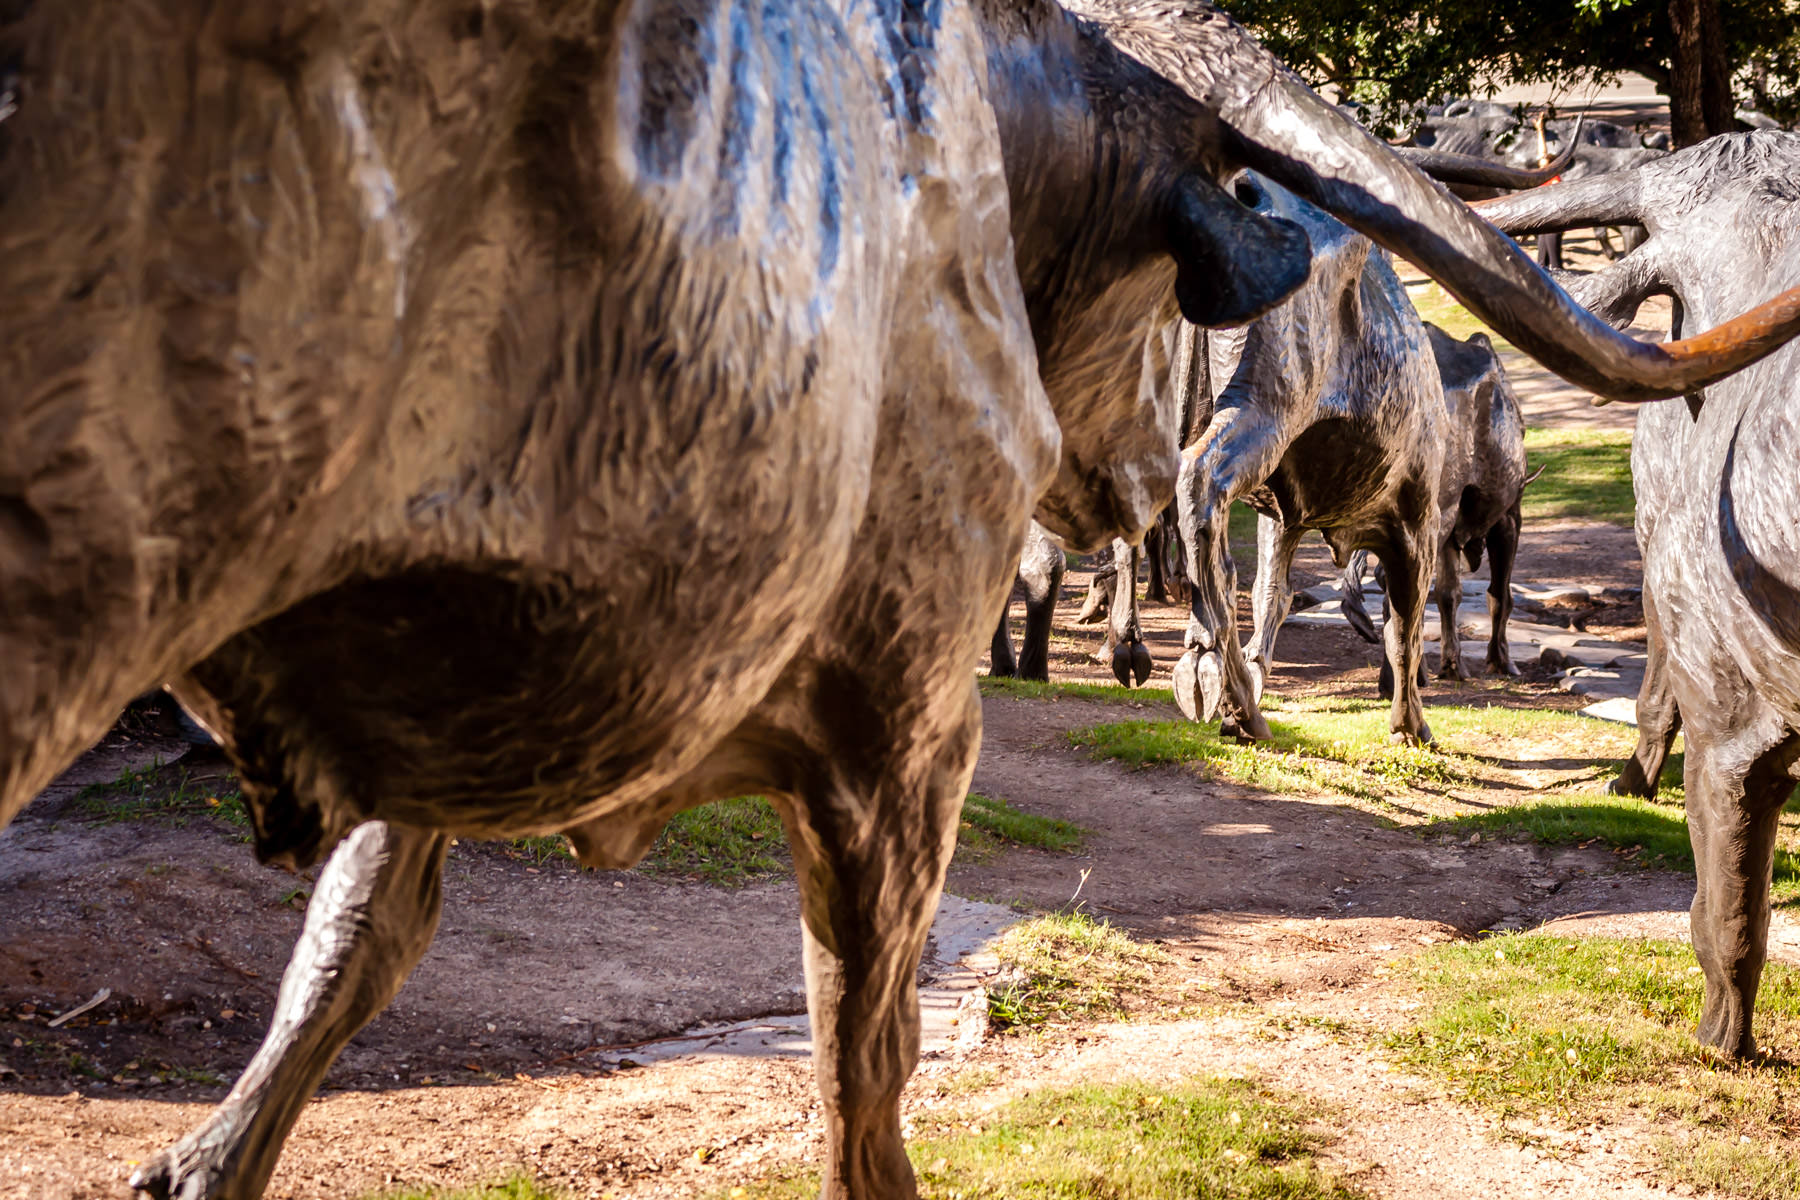 A herd of bronze cow statues meanders through Dallas' Pioneer Plaza.